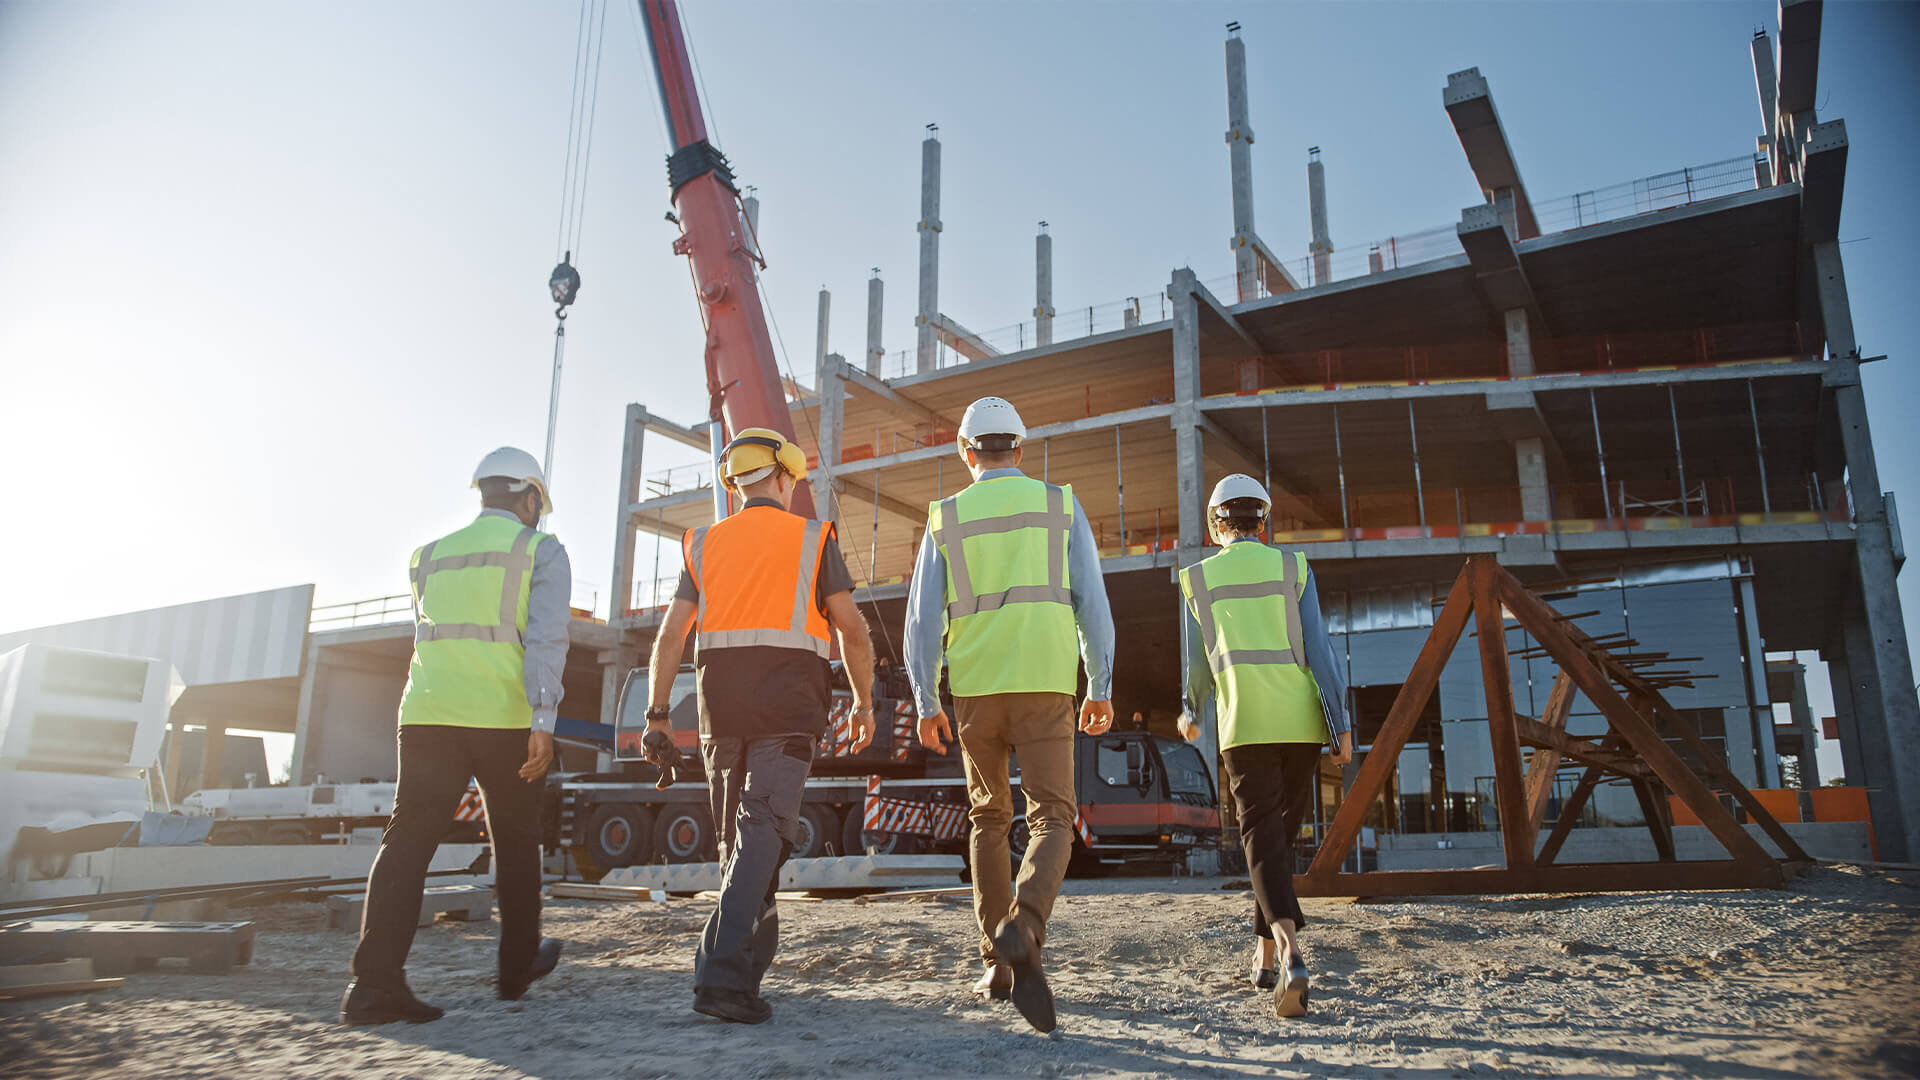 Four people in safety gear walking through a construction site